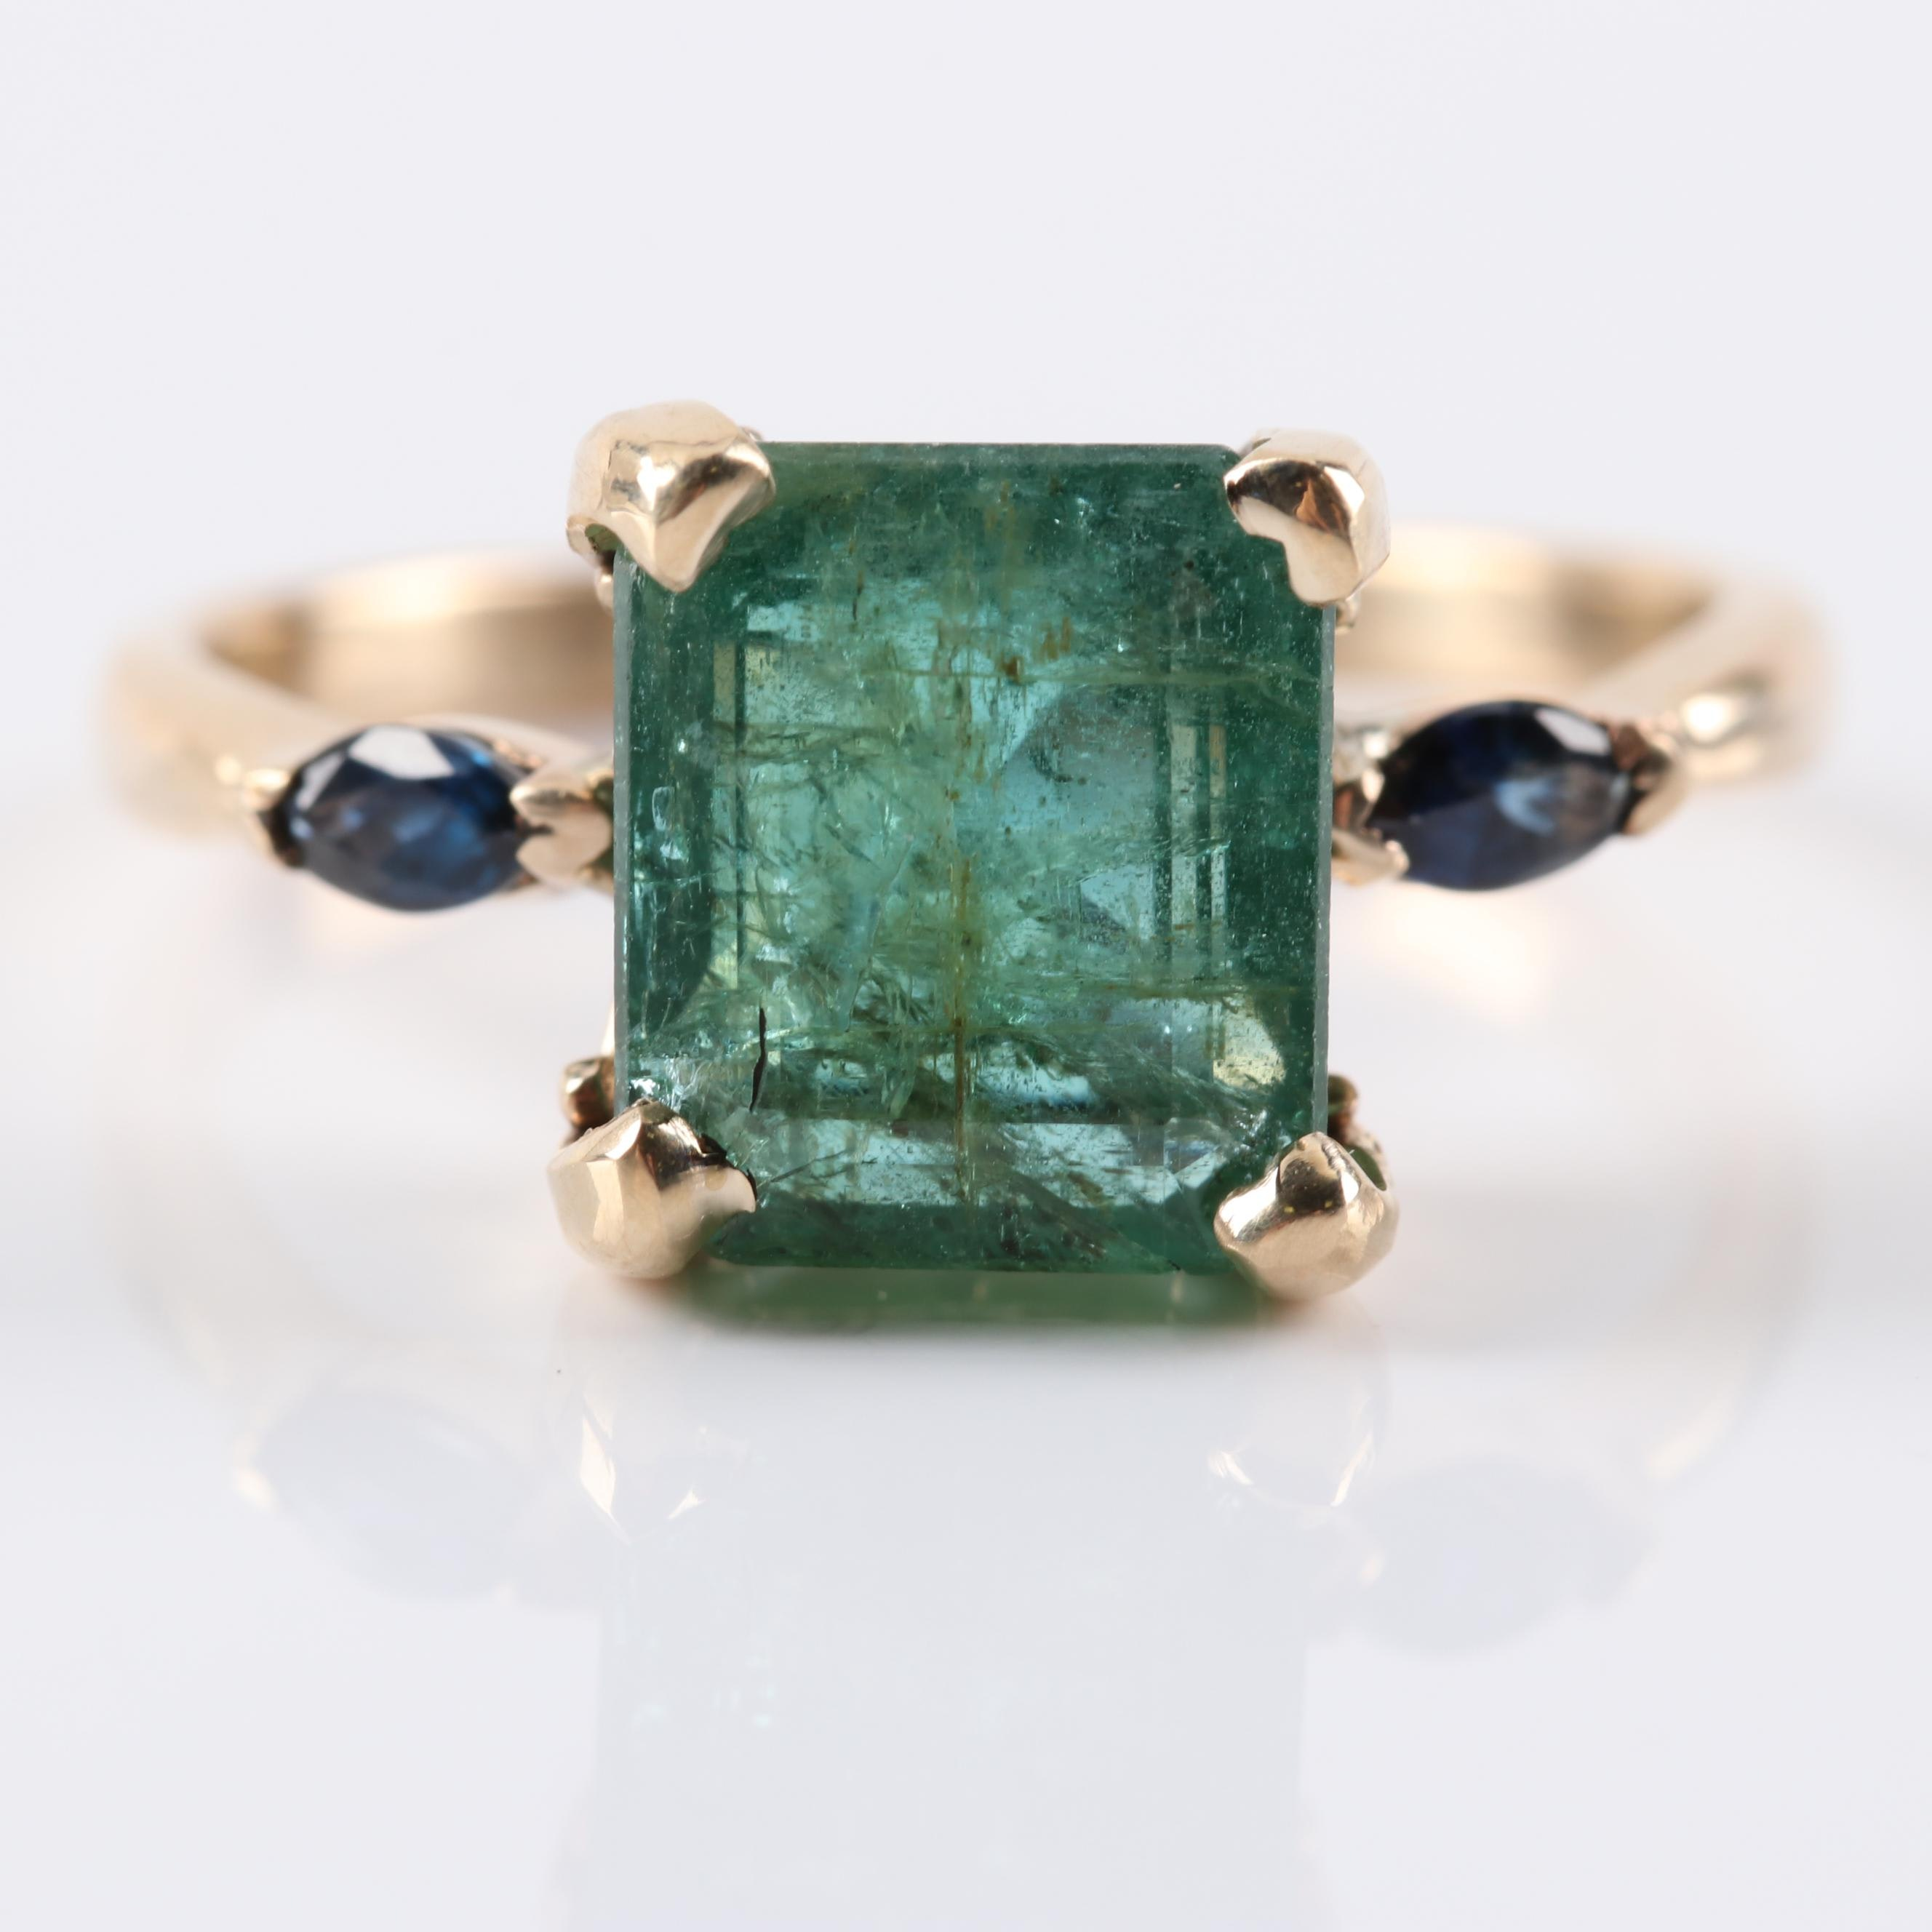 14K Yellow Gold 3.40 CT Emerald and Sapphire Ring